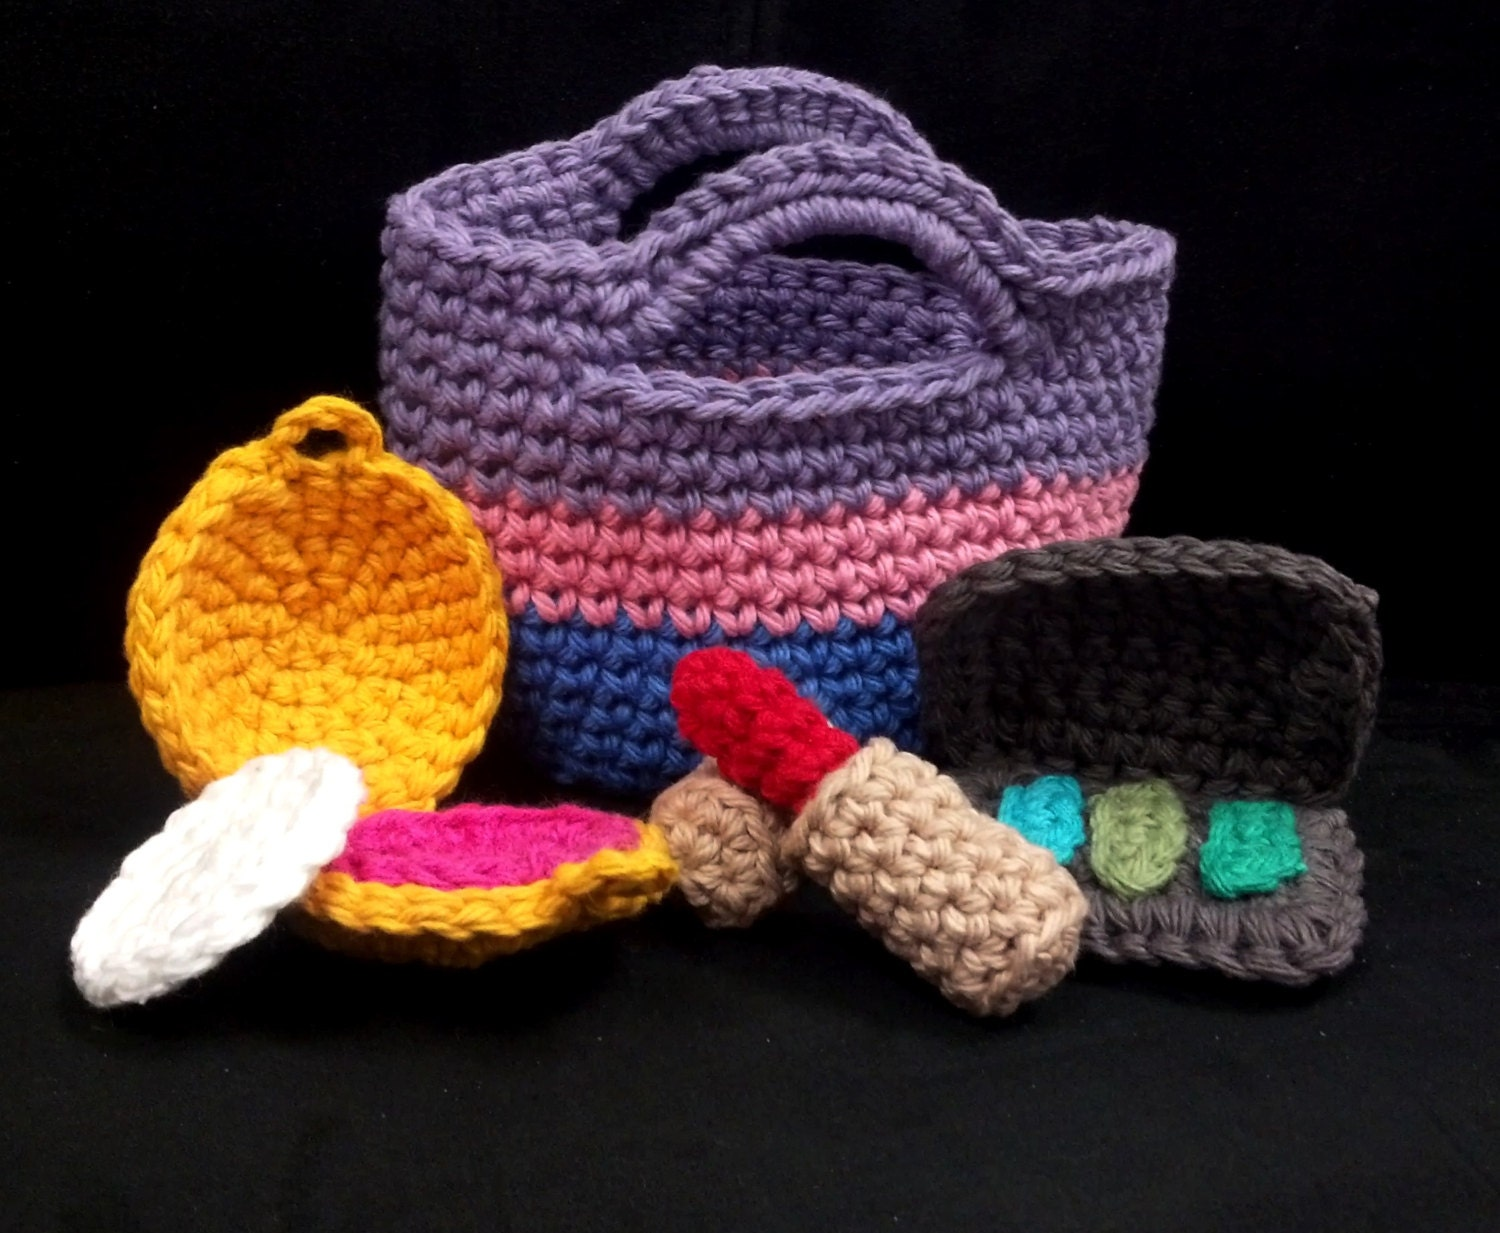 Amigurumi Crochet Pattern Quick and Easy Make-up and Bag